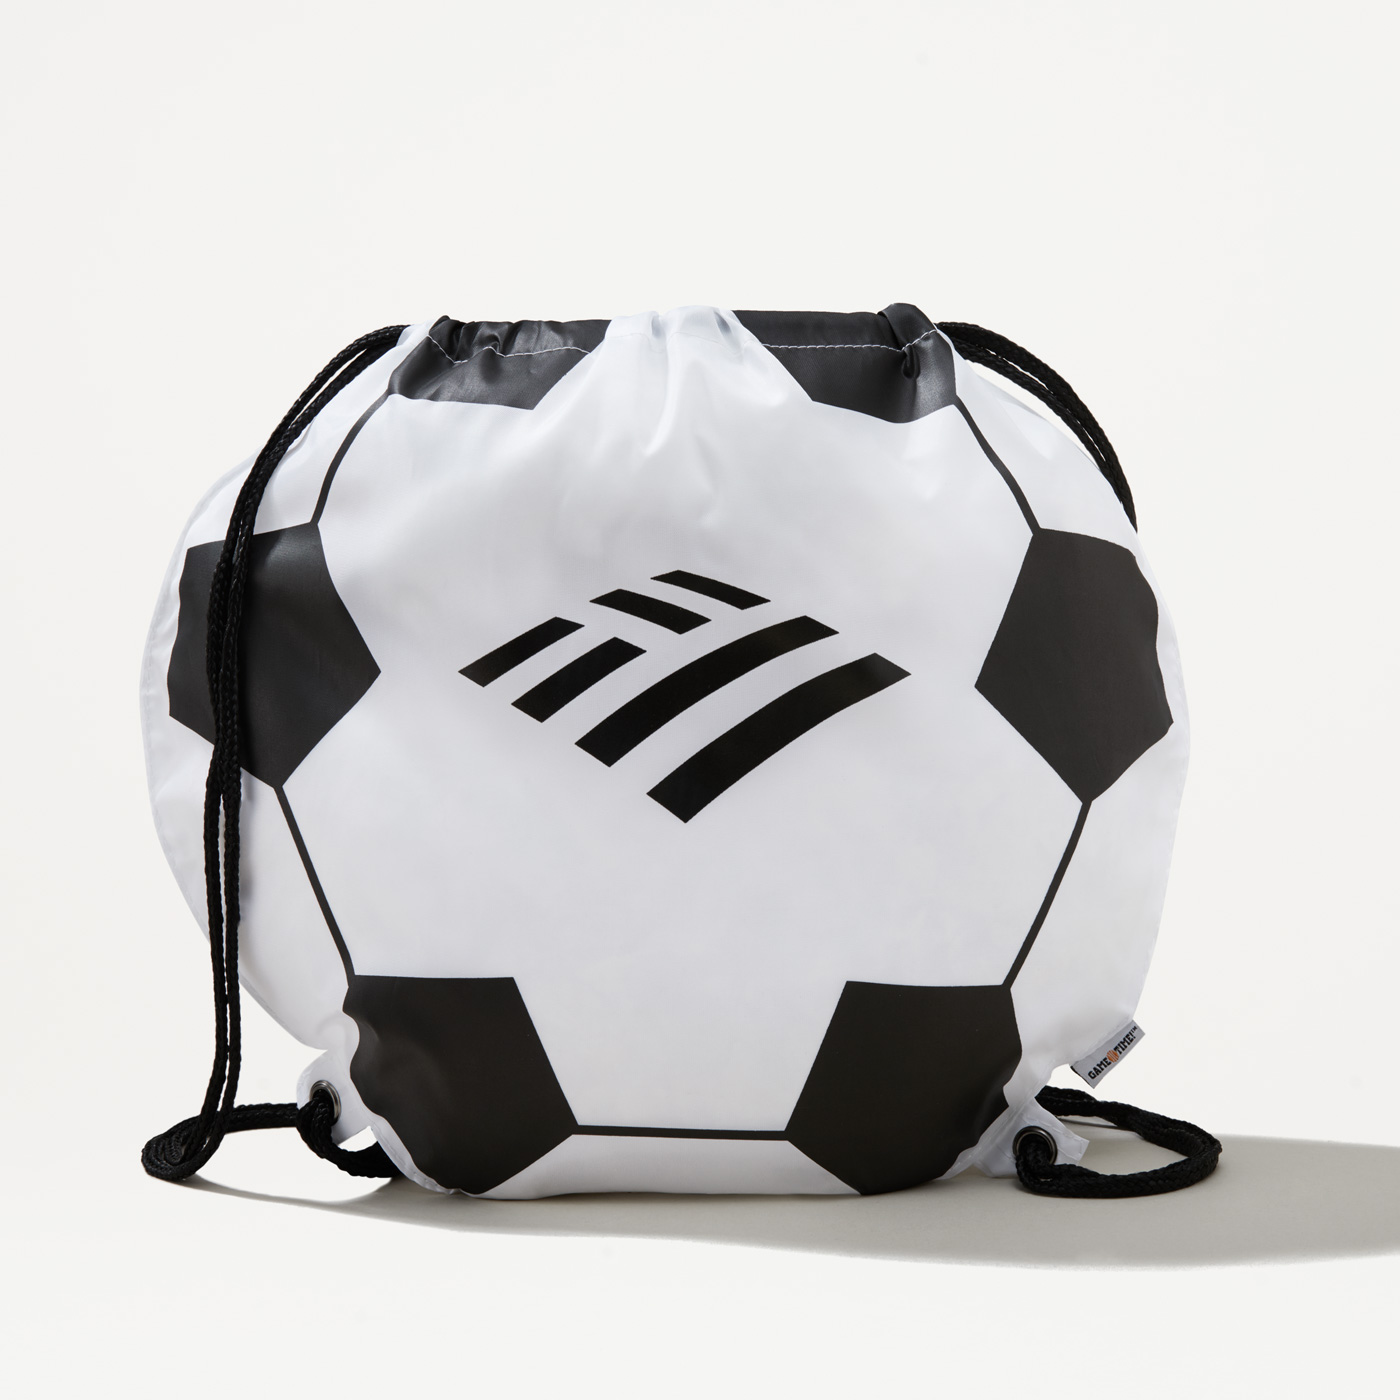 Enjoyable Flagscape Soccer Drawstring Bag Bank Of America Store Gmtry Best Dining Table And Chair Ideas Images Gmtryco